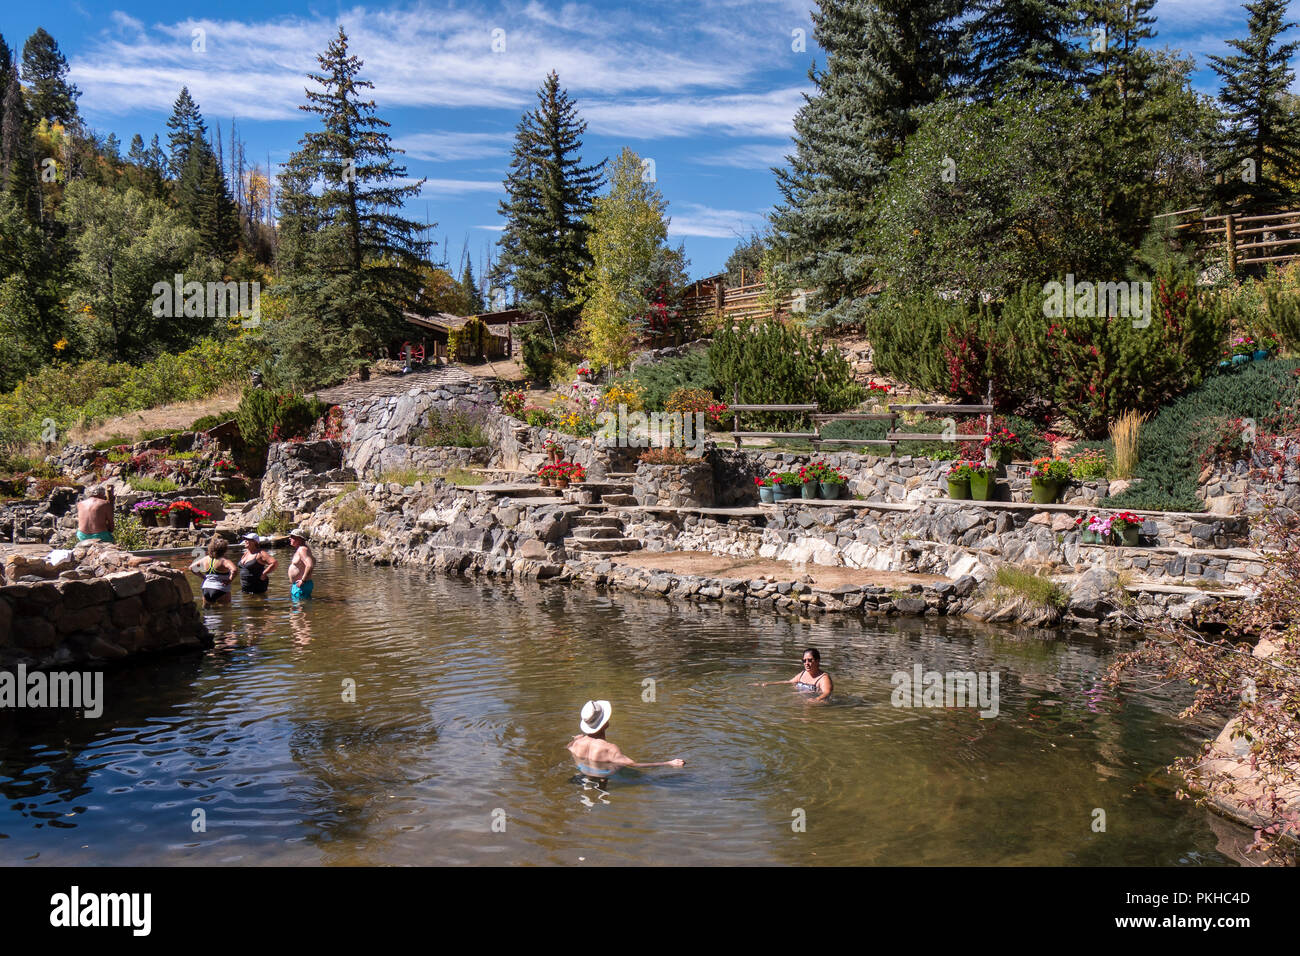 Bathers soak in the warm water, Strawberry Park Hot Springs, Steamboat Springs, Colorado. - Stock Image